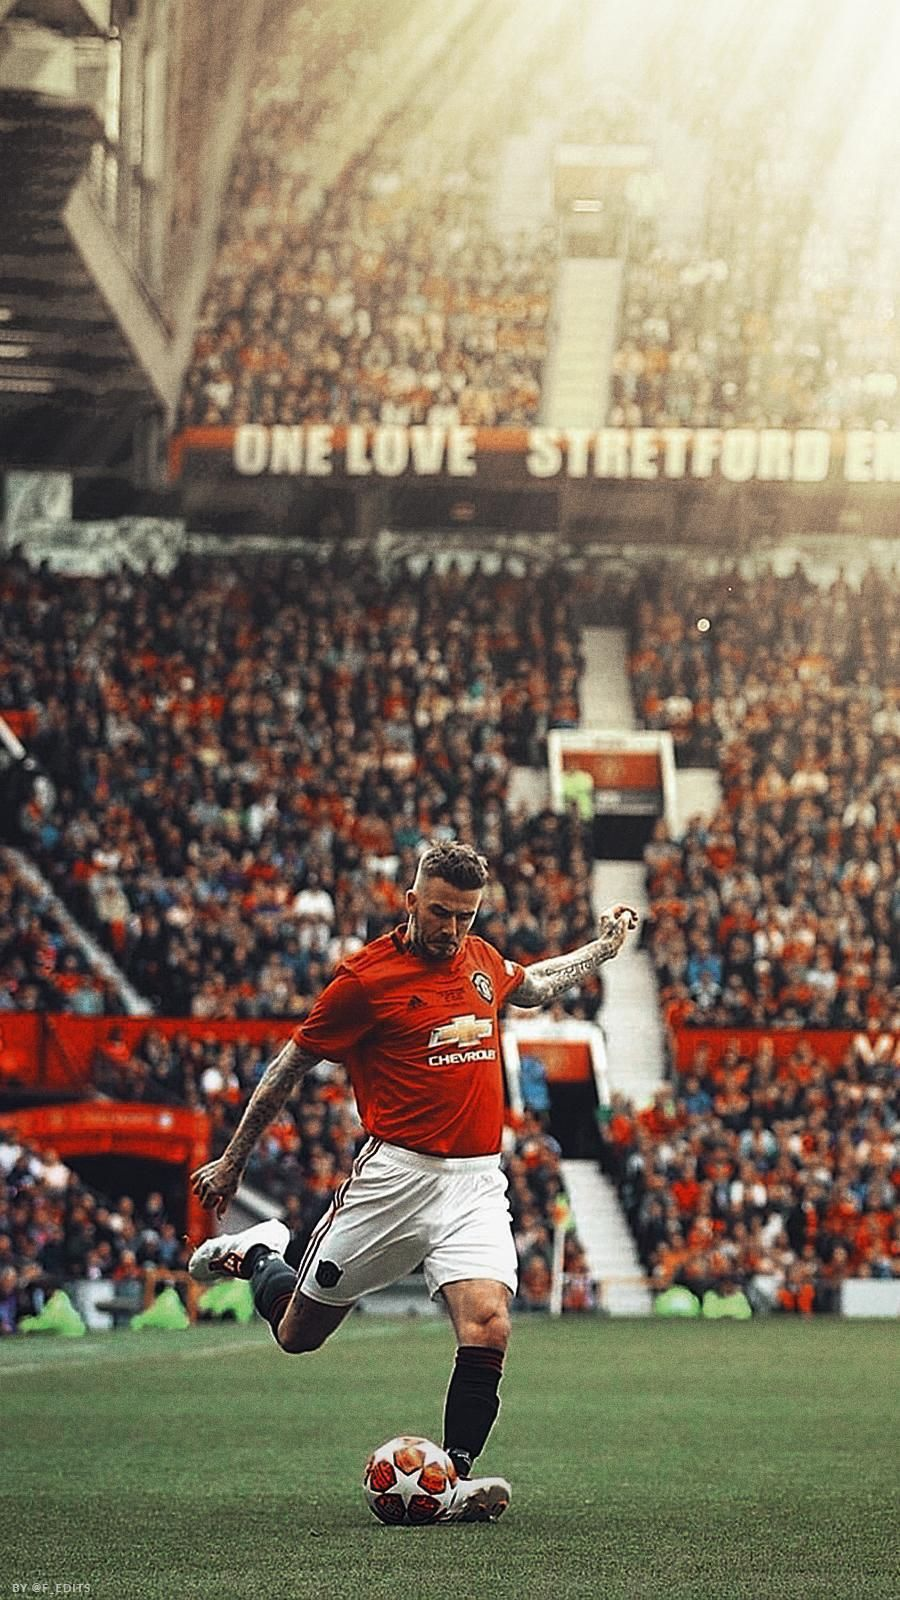 David Beckham Wallpaper In 2020 David Beckham Manchester United Manchester United Wallpaper Manchester United Team